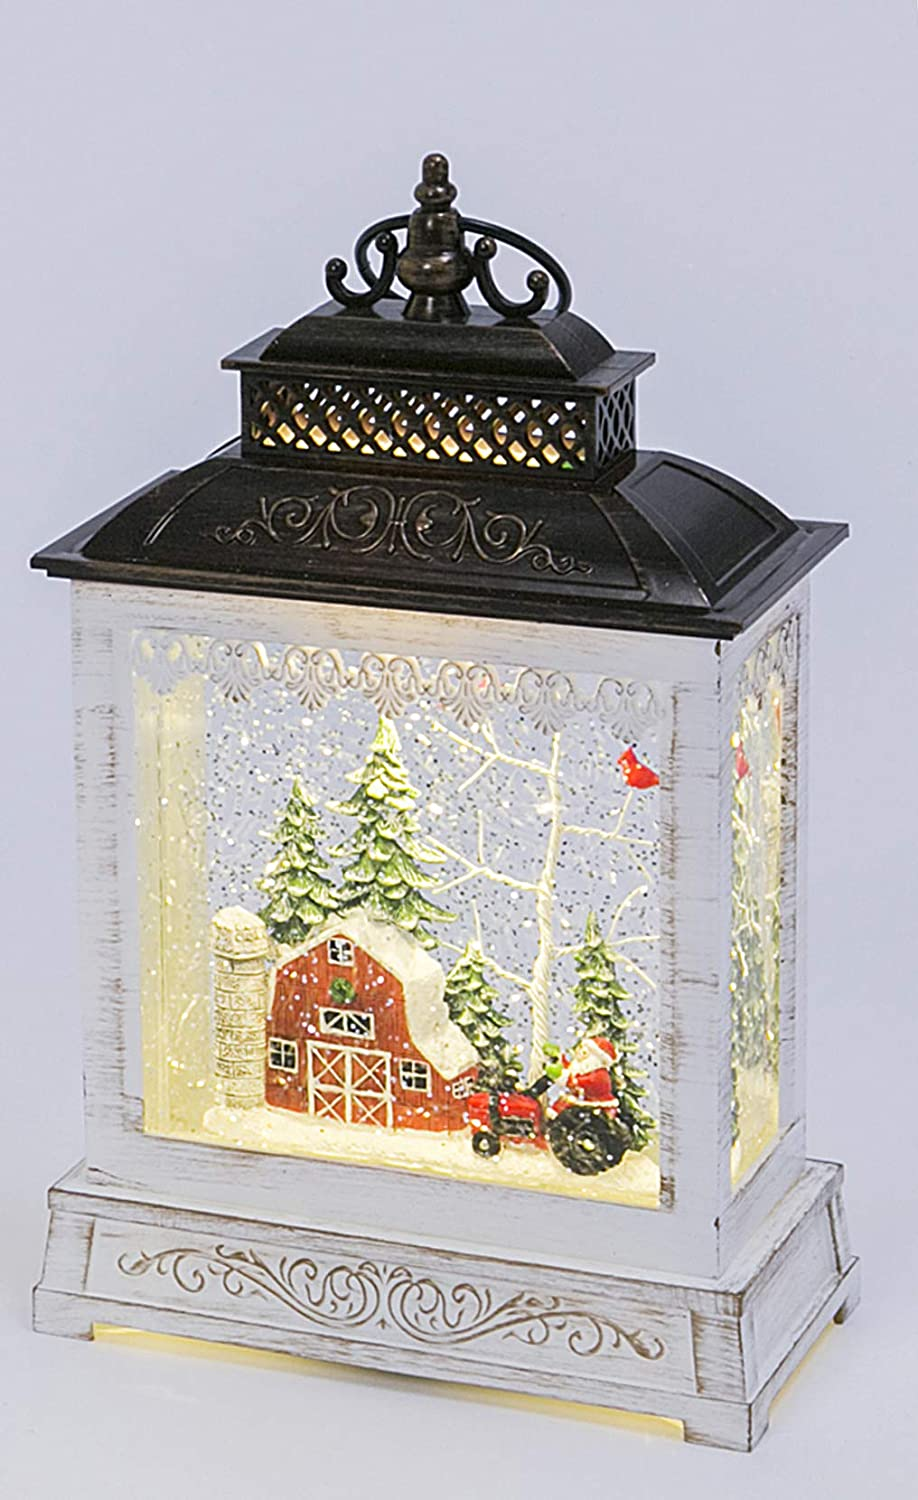 Red Barn with Santa on His Red Tractor Christmas Musical Lighted Water Lantern, 9 Inches High, Battery Operated with Timer- 2 Modes, Christmas Snow Globe with Swirling Glittered Snow Effect